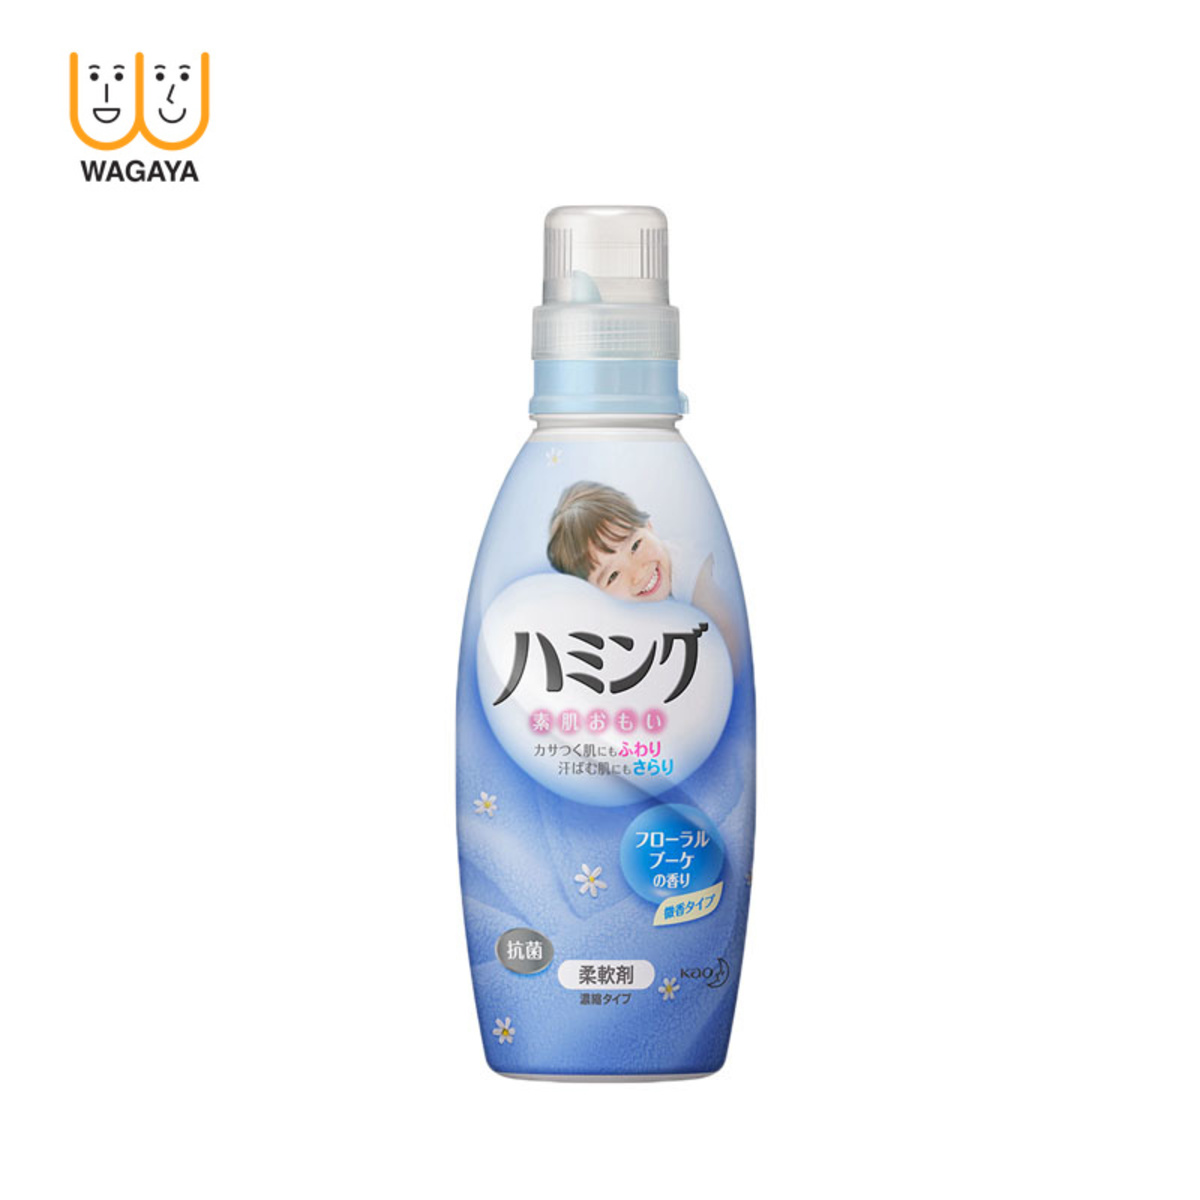 Humming Fragrance Fabric Softener 600ml (Floral Bouquet - Blue)